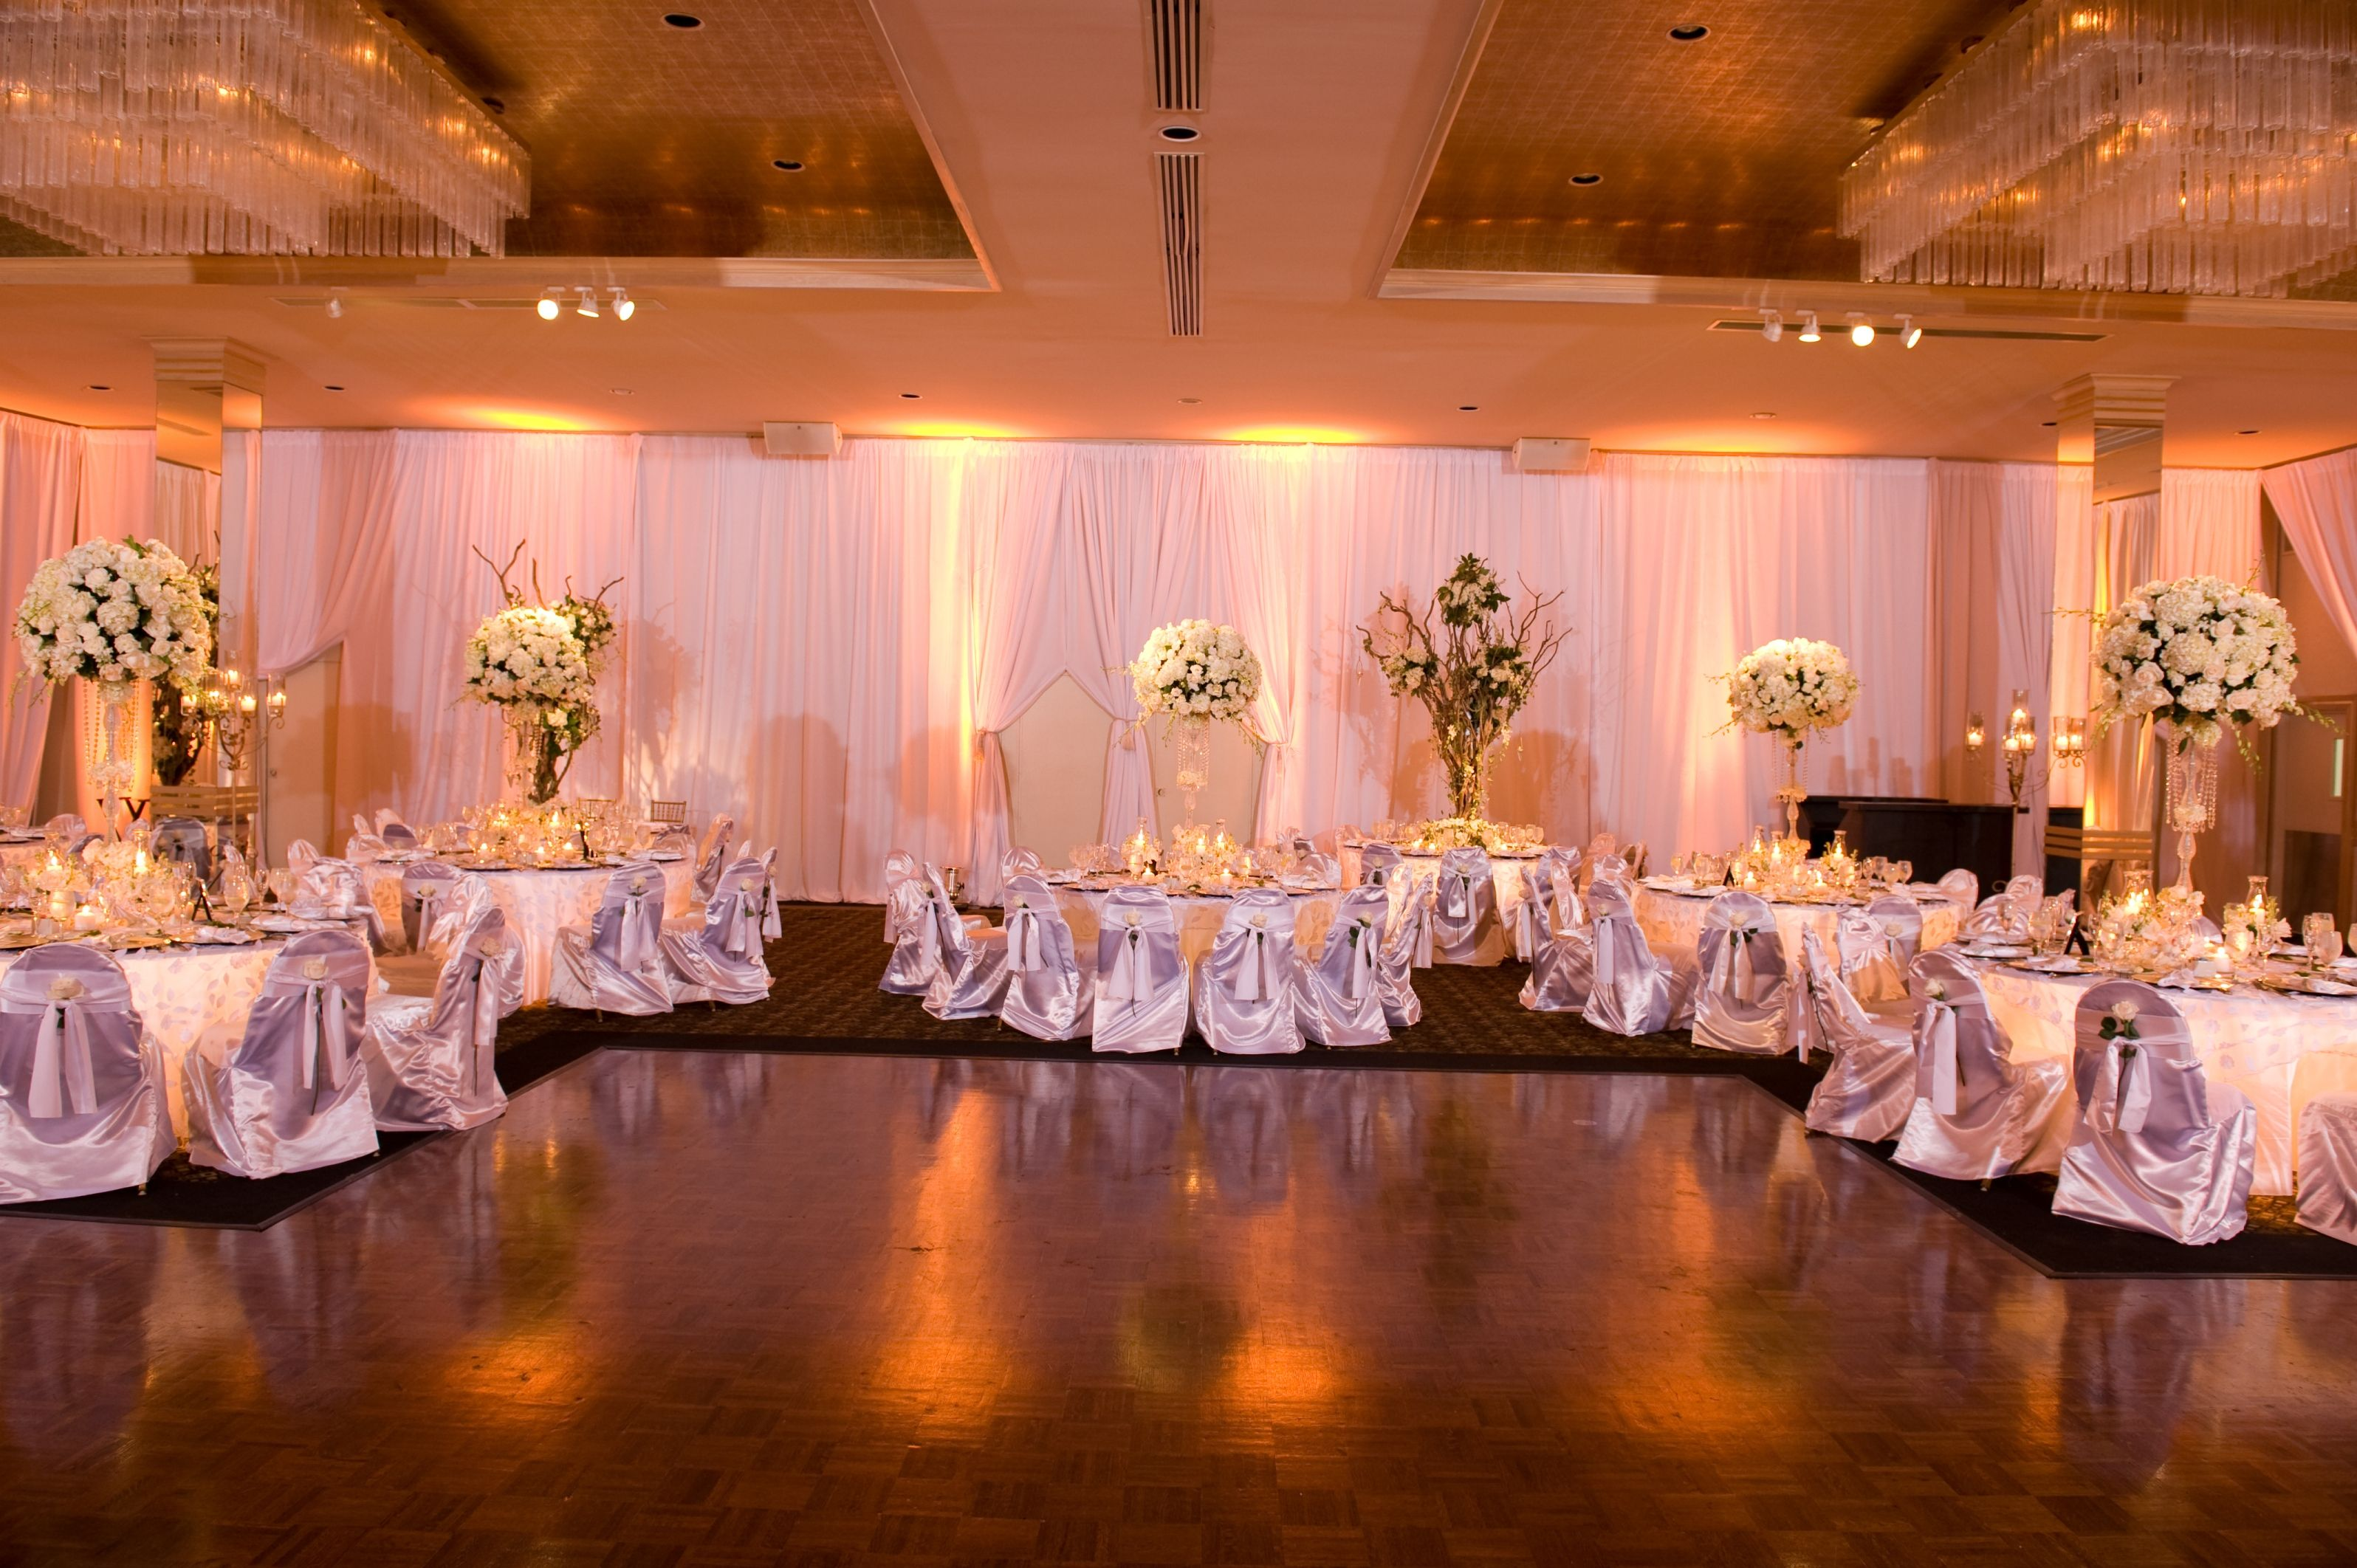 Columns ivory fabric uplighting wedding ceremony downtown double tree - Create An Amazing Event With Minnesota Wedding Uplighting By Pro Sound Light Show Djs Up Lights Are Also Available For Wisconsin Wedding Receptions